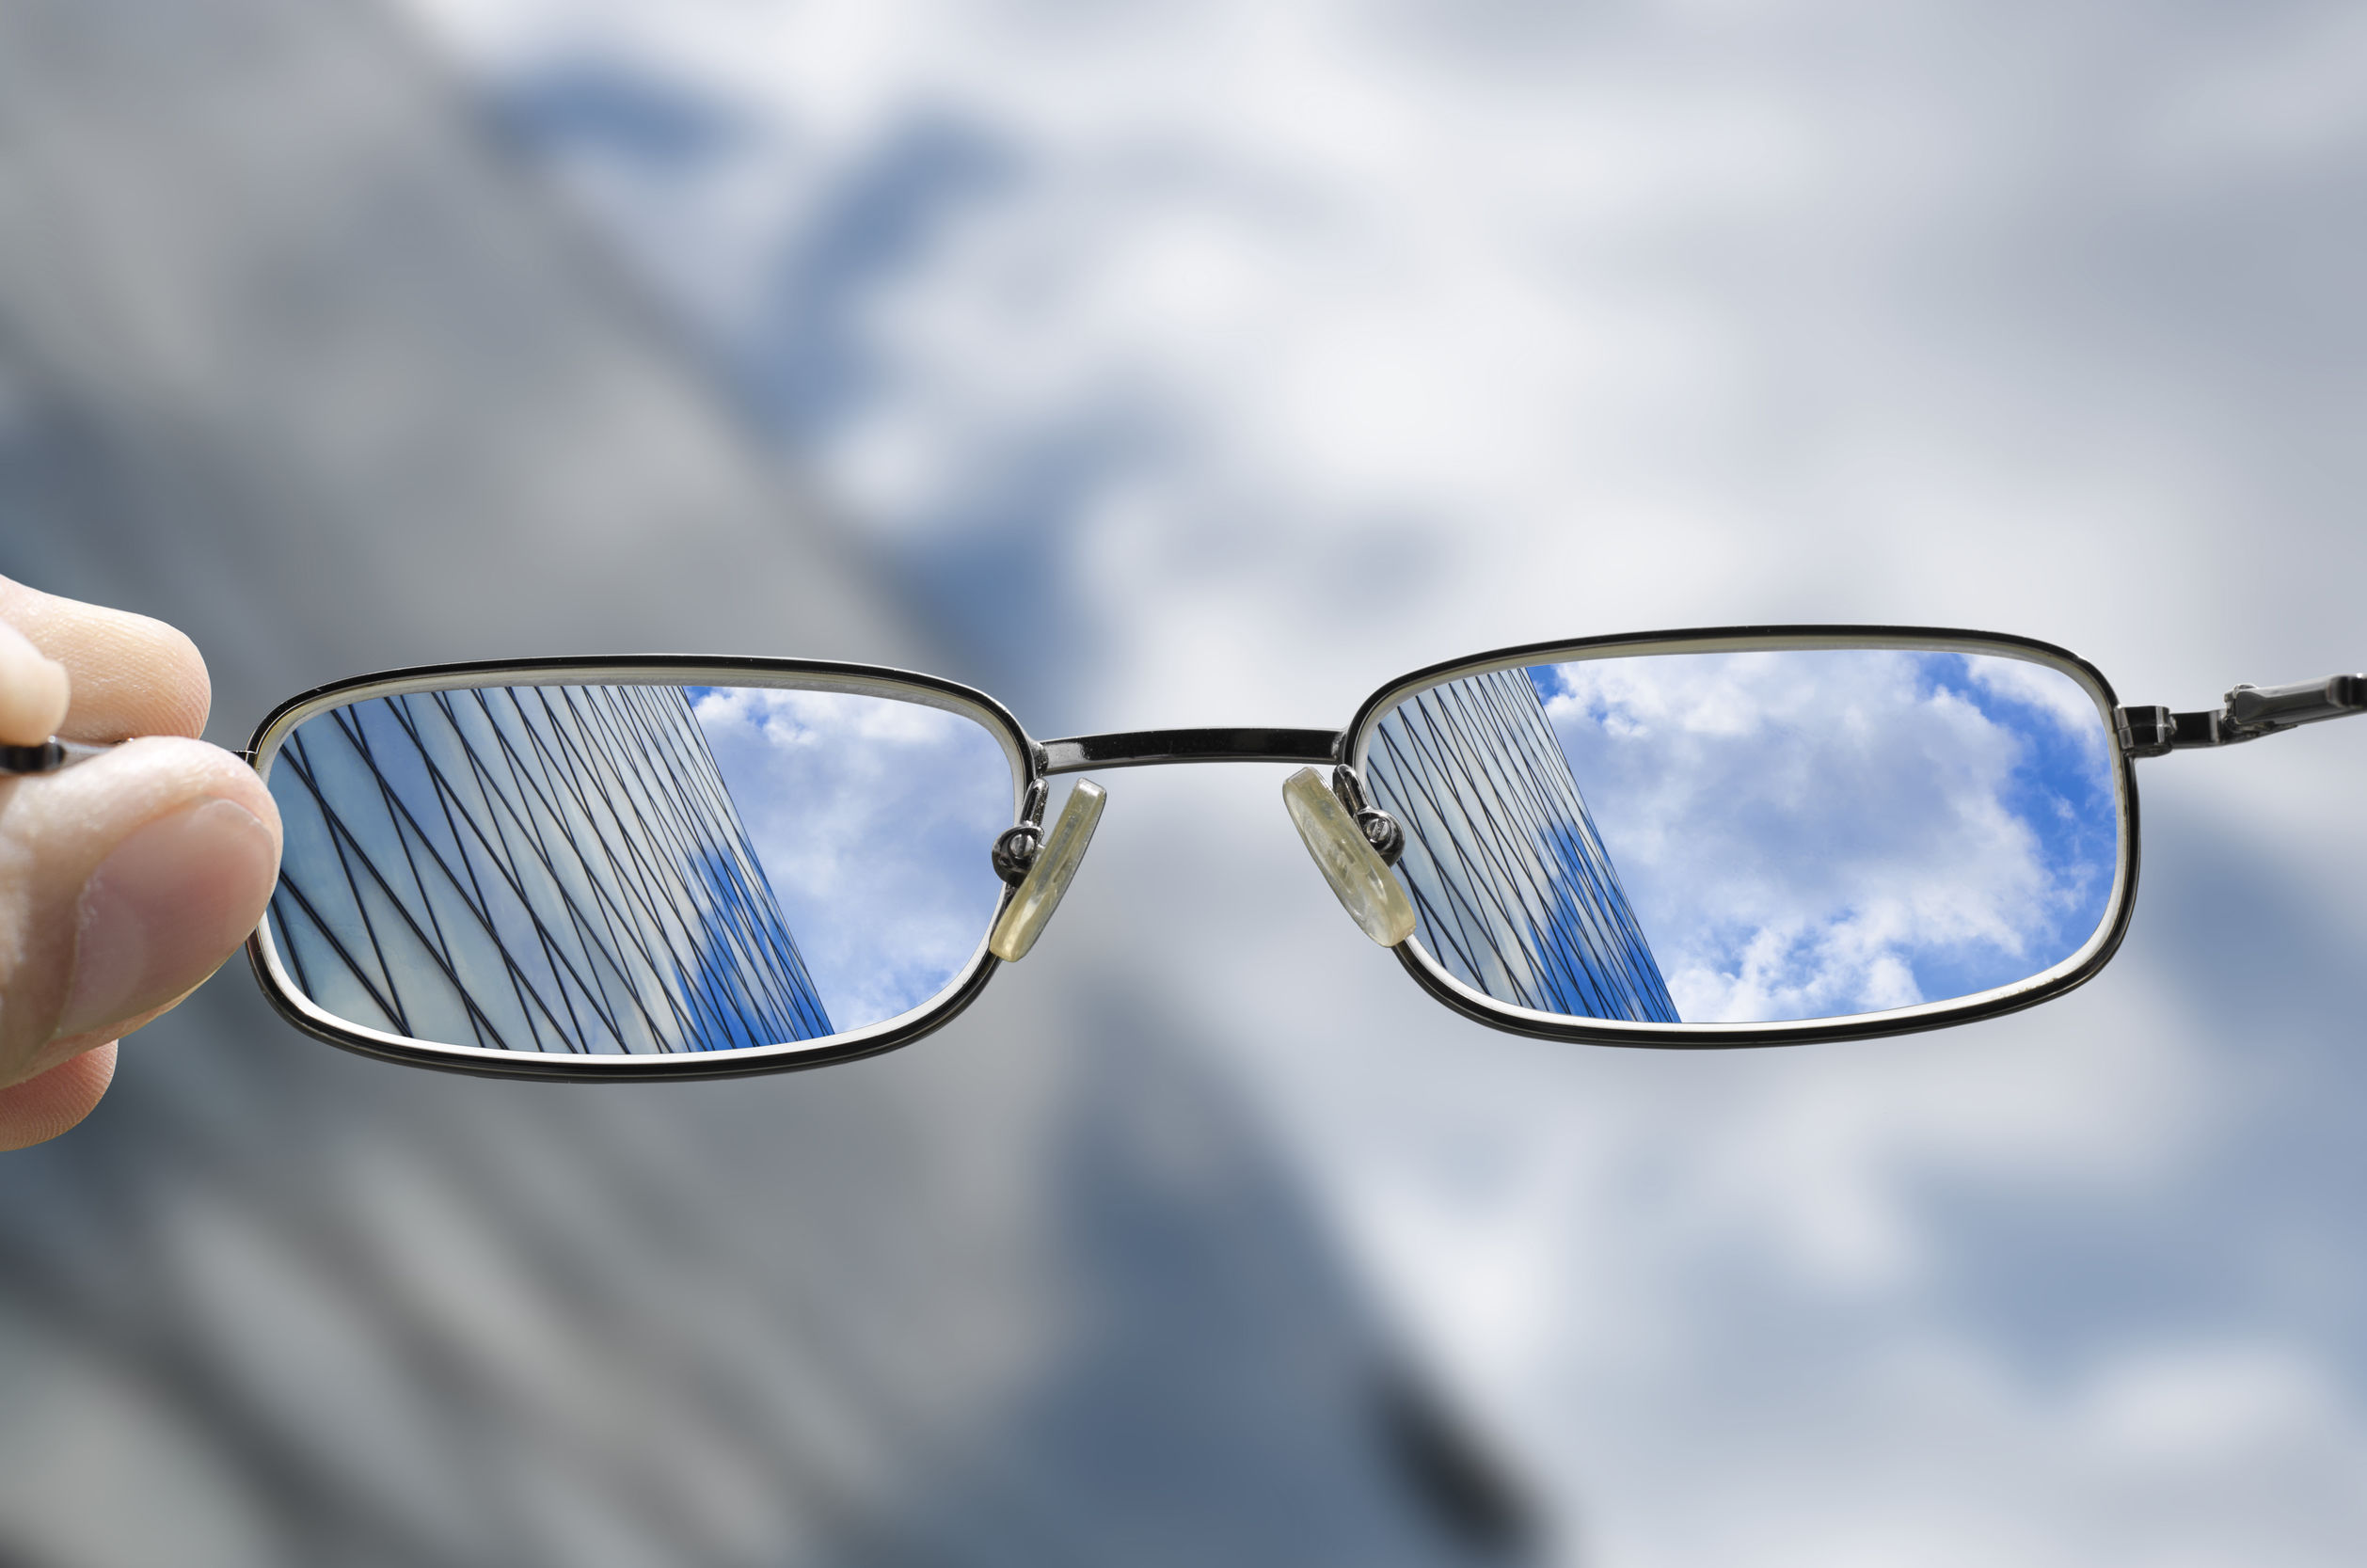 Eyeglasses lifted to give a clear view